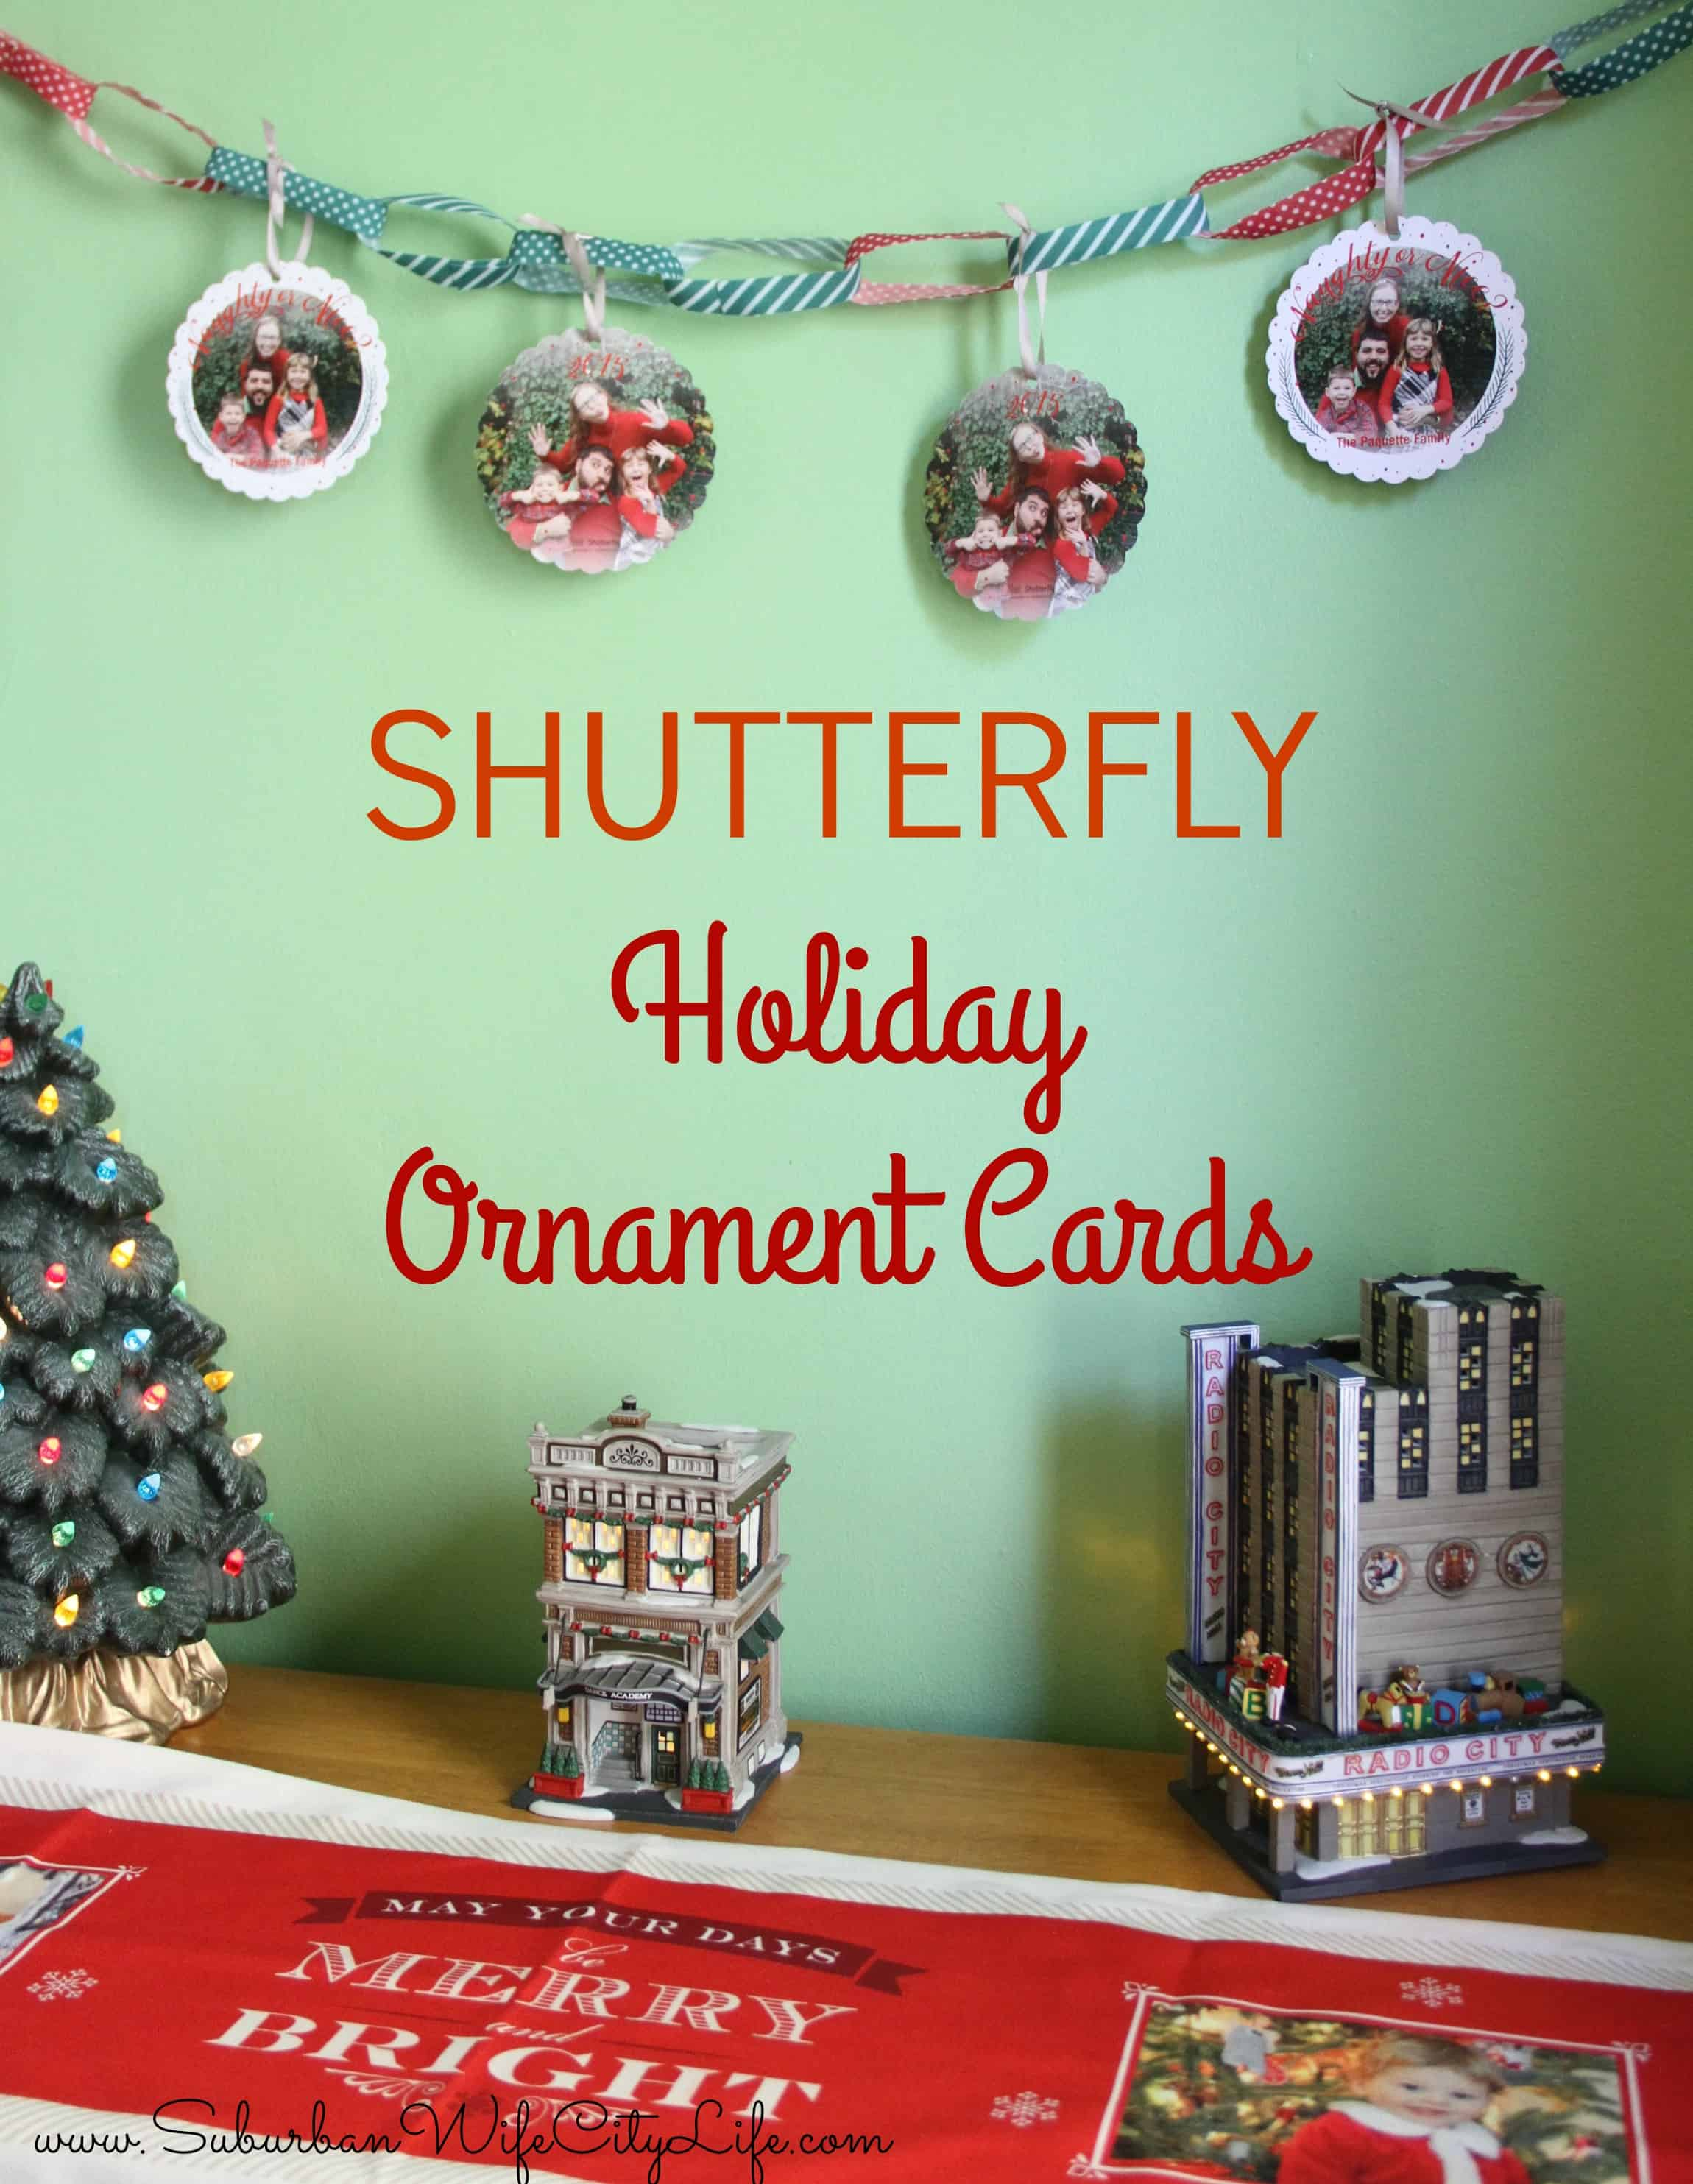 Holiday Ornament Cards from Shutterfly - Suburban Wife, City Life